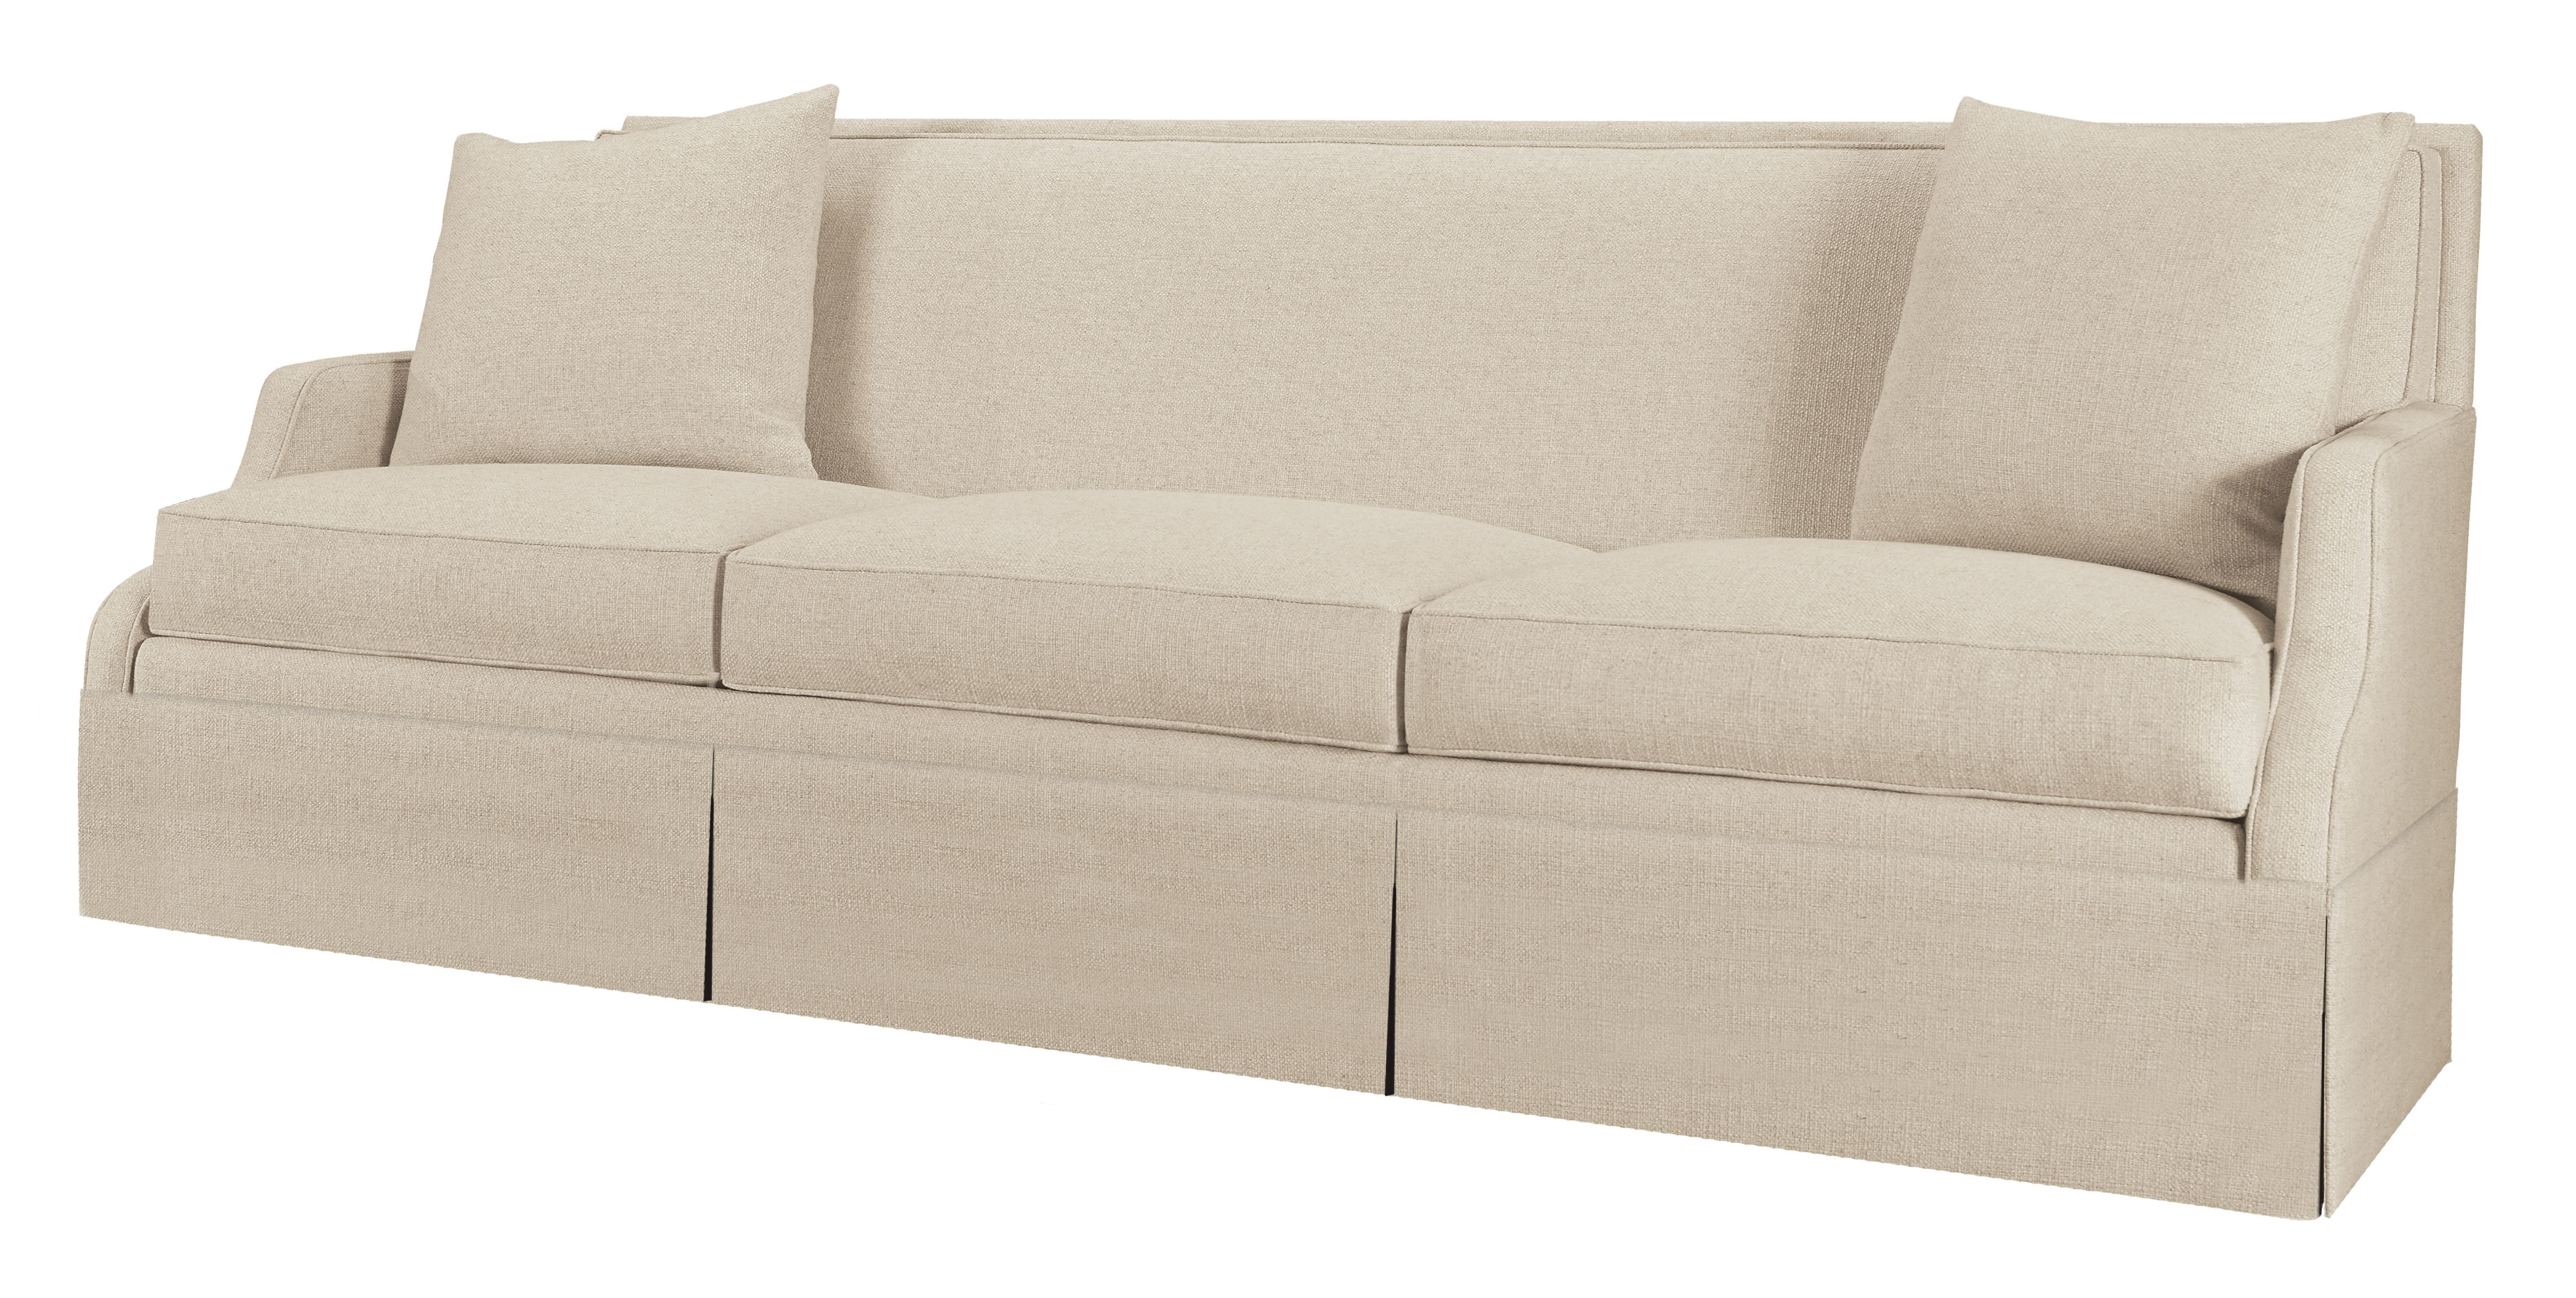 Great sofa shape! This designer asked for a kick pleat